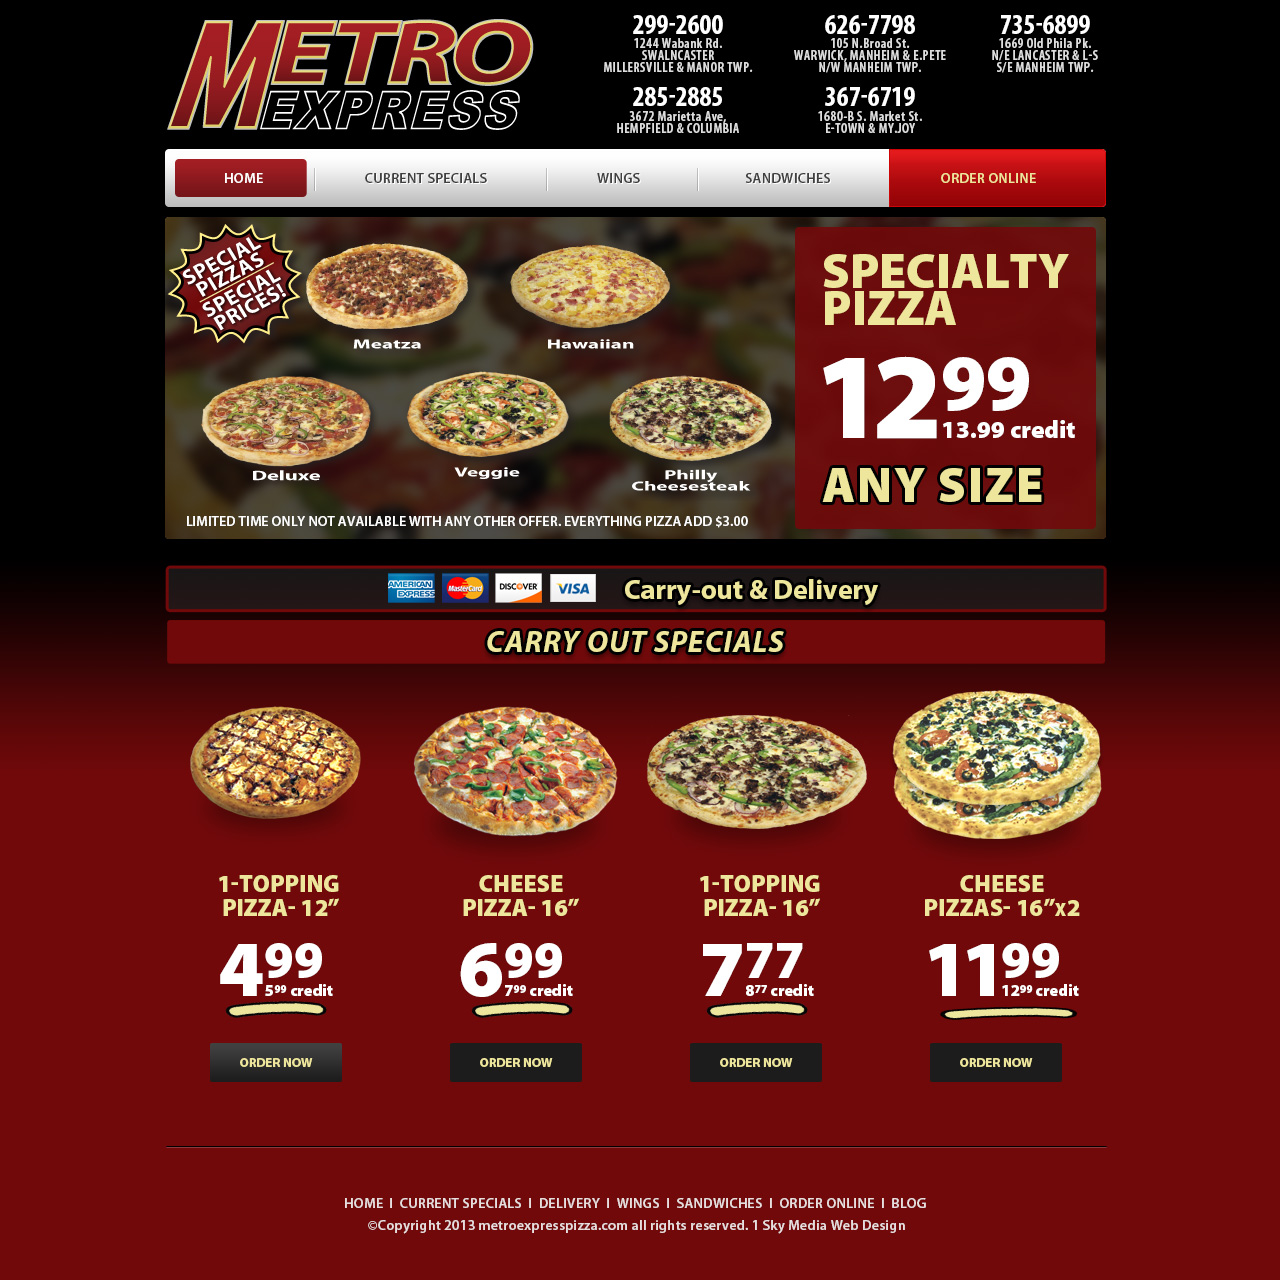 Metro Express Pizza Delivery - pizza delivery company website design